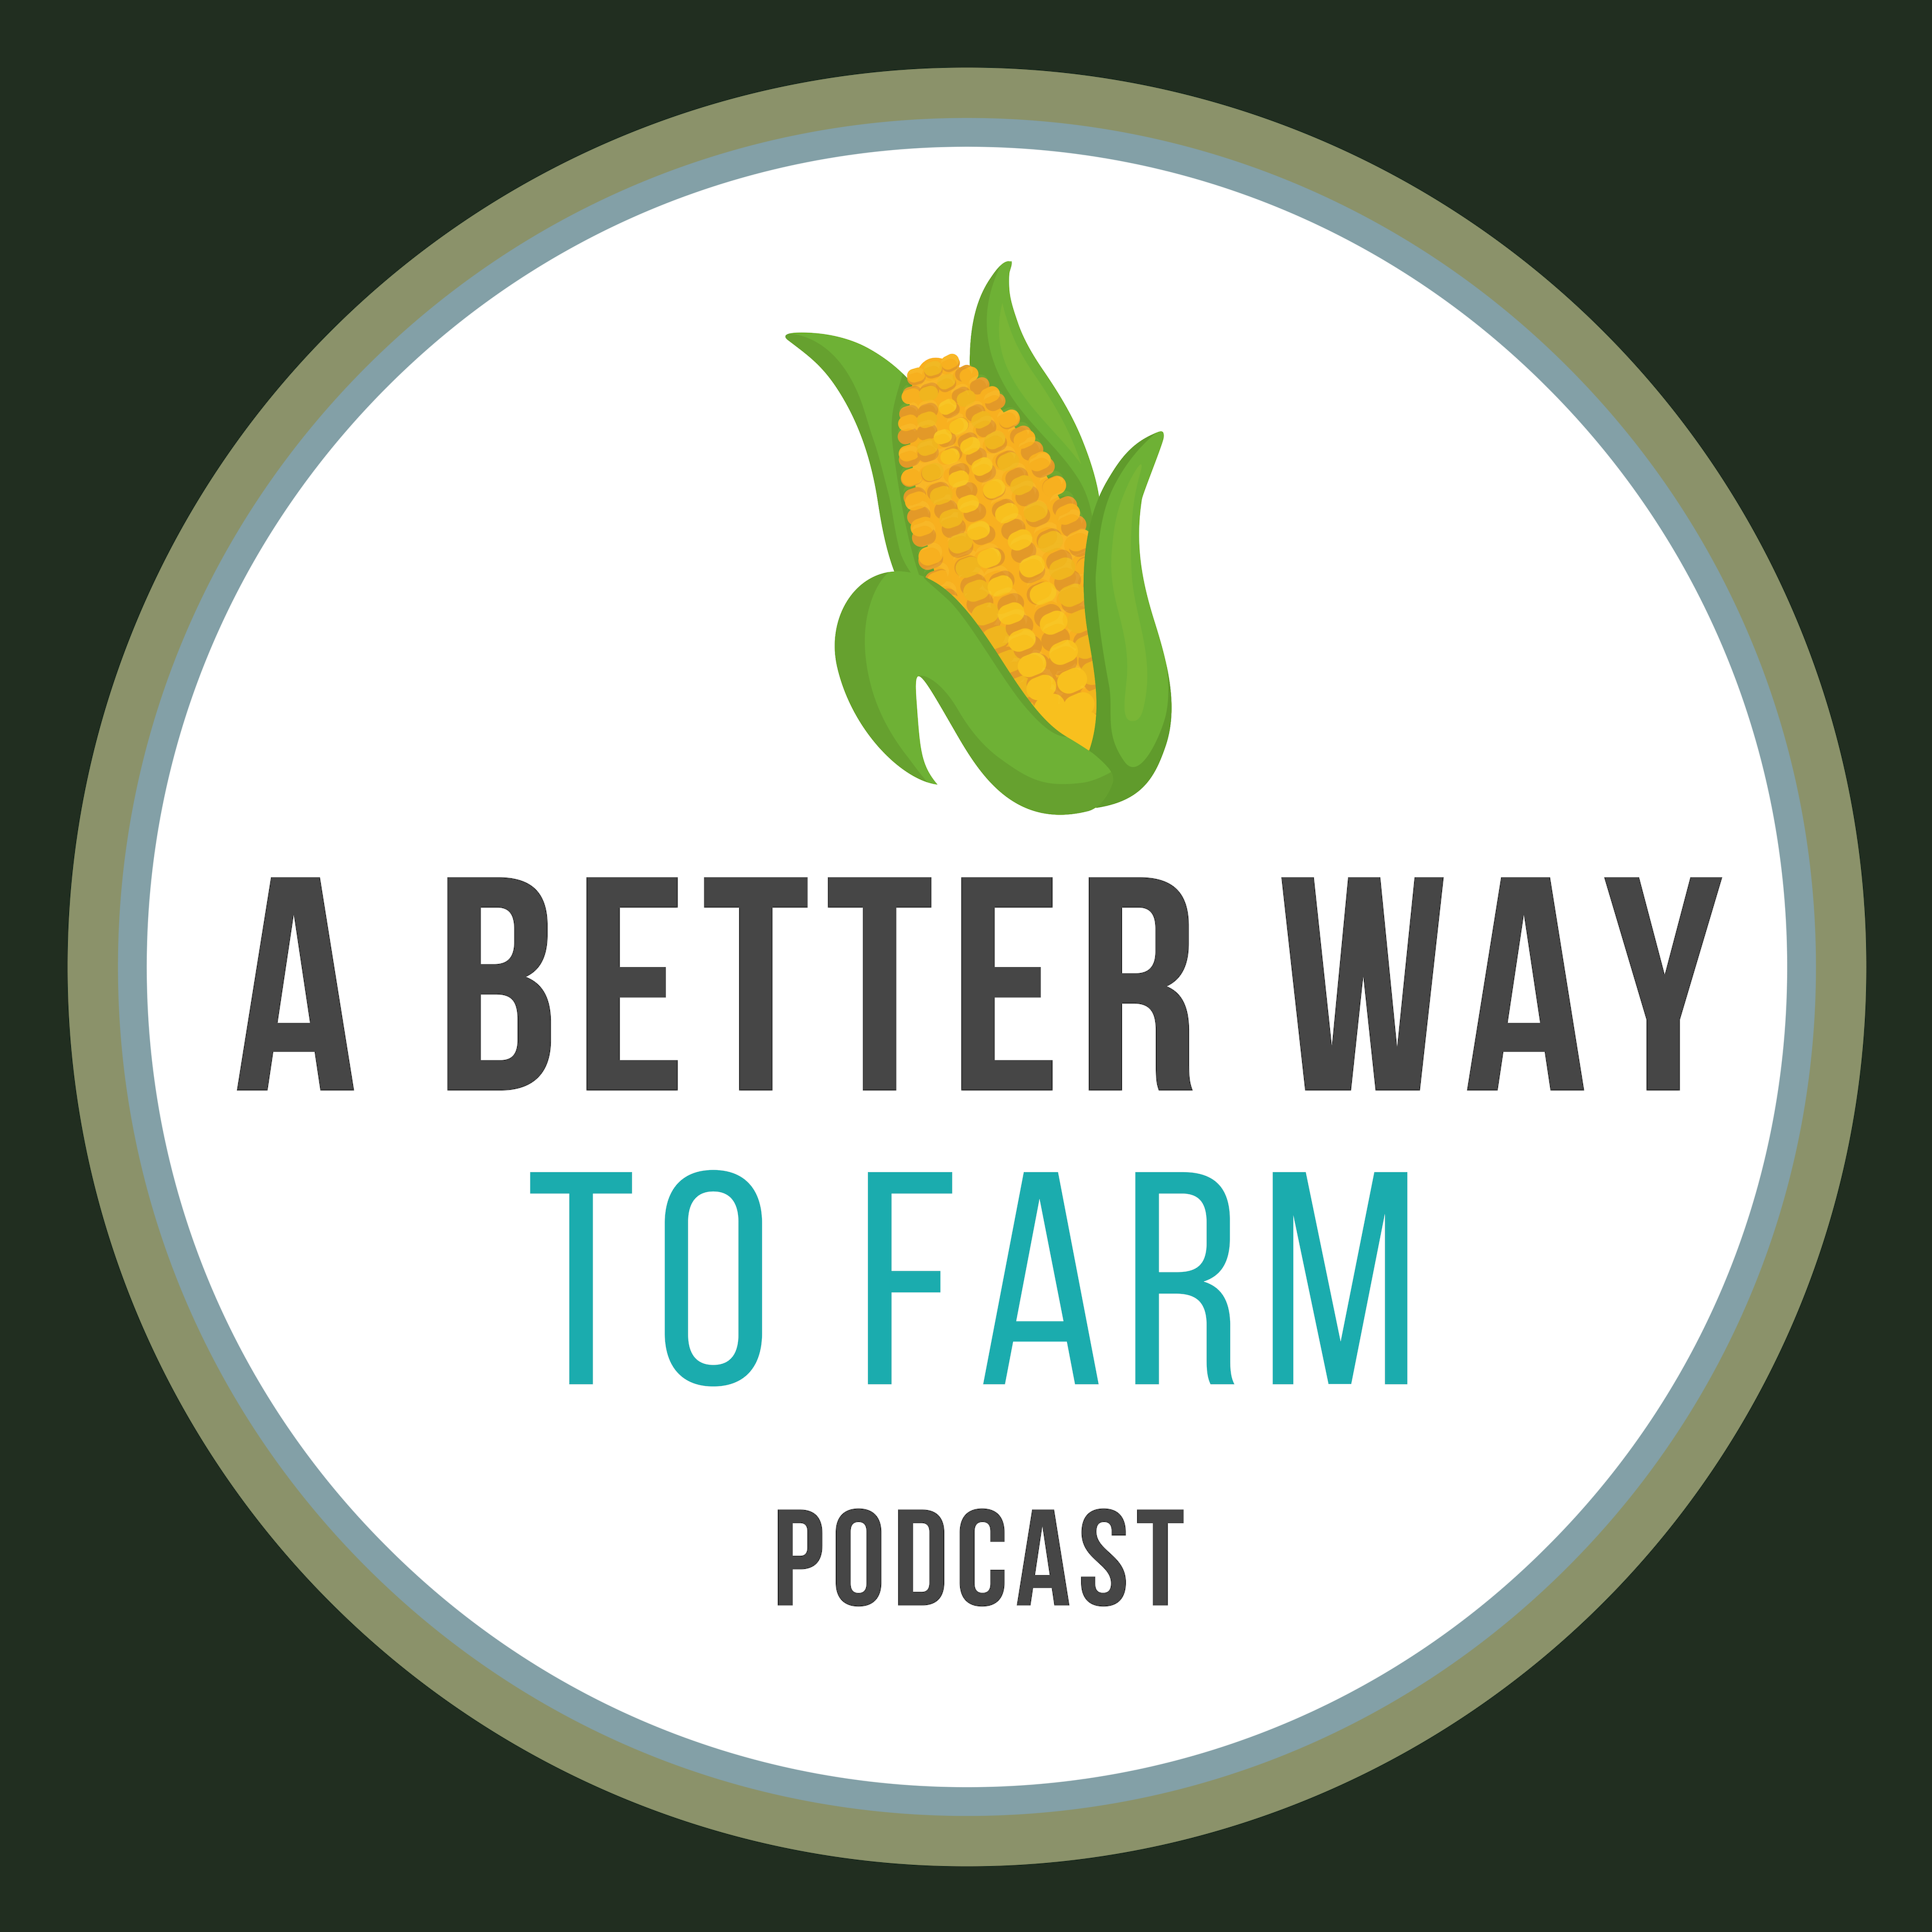 A Better Way to Farm Podcast show art